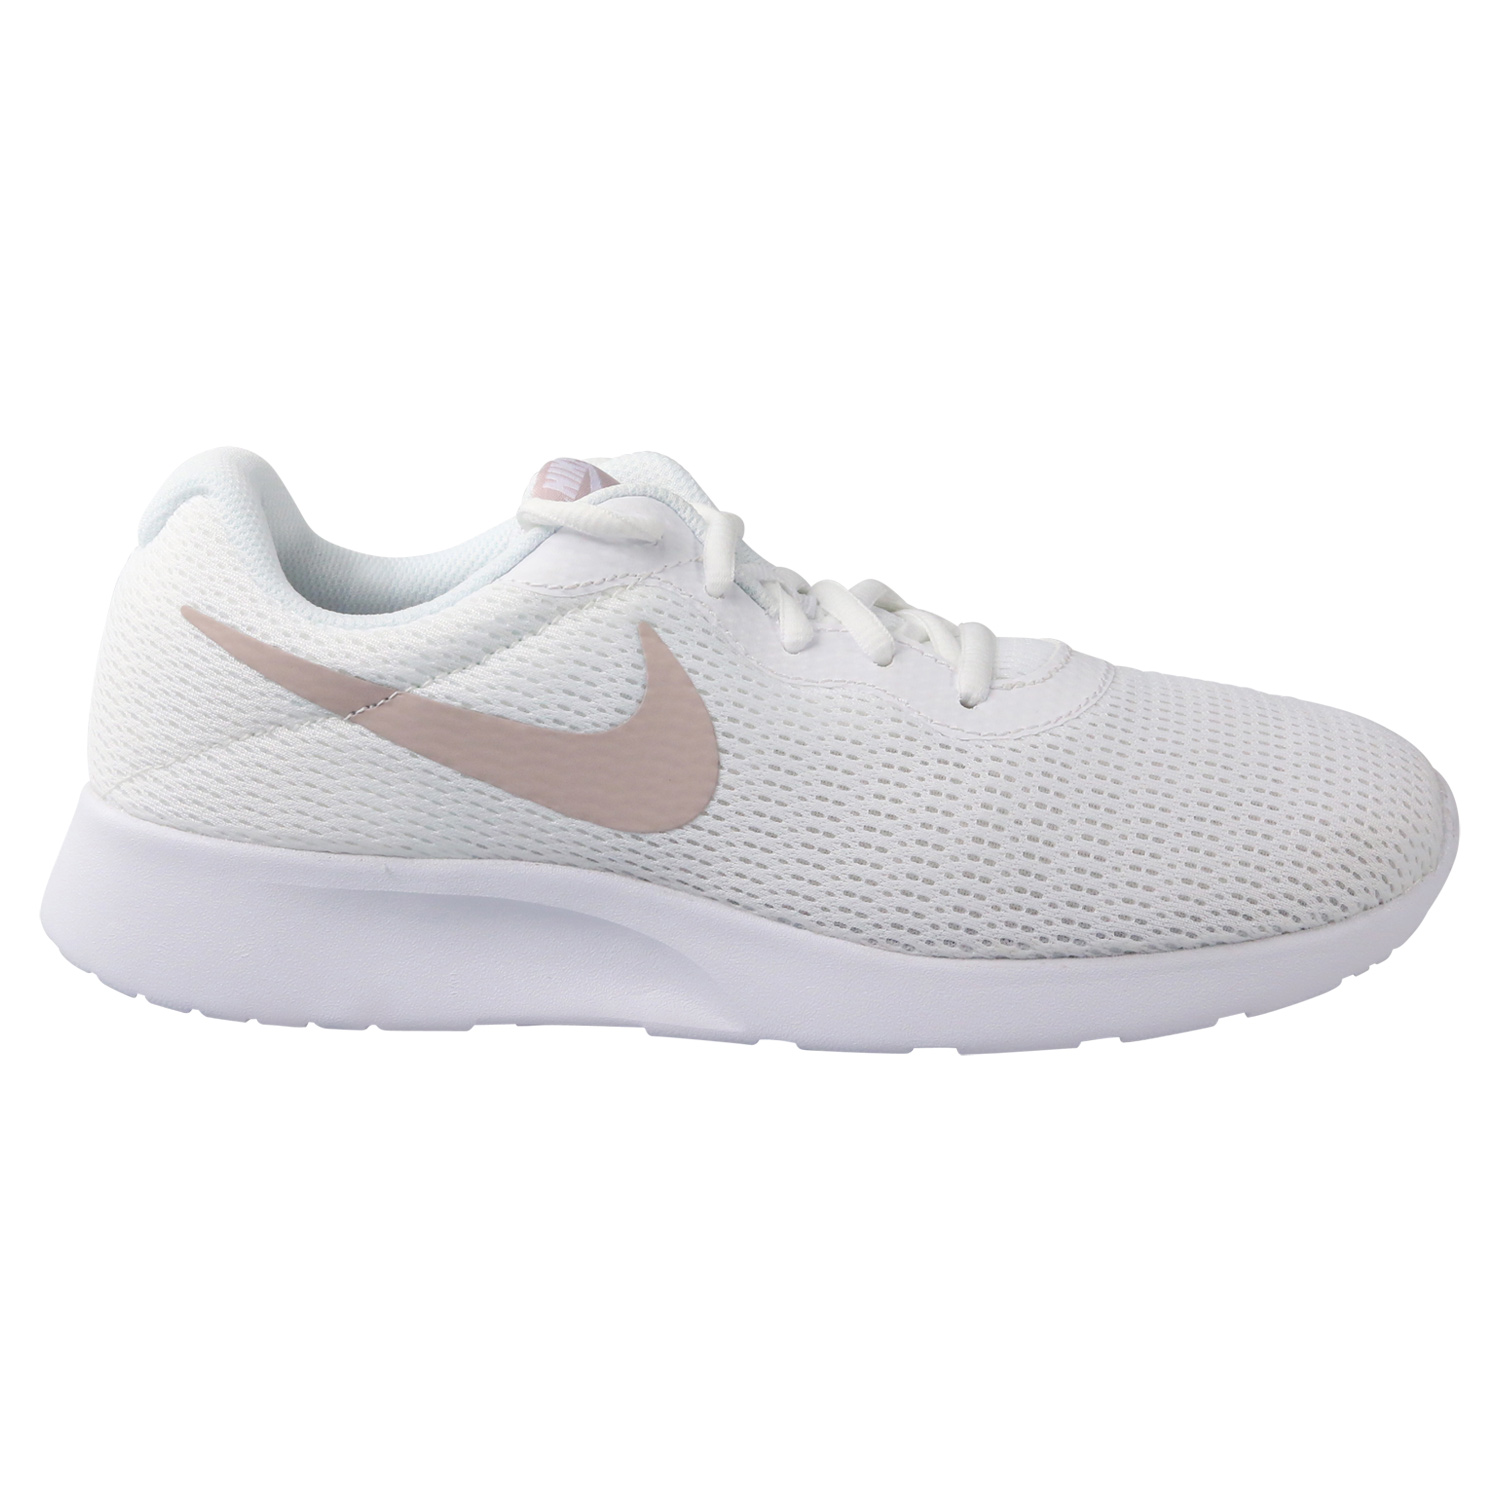 check out 340ca 65b62 ... usa nike tanjun racer 812655 sneaker femmes chaussures 812655 racer  9216 68 3edd2f 0703c 1bac5